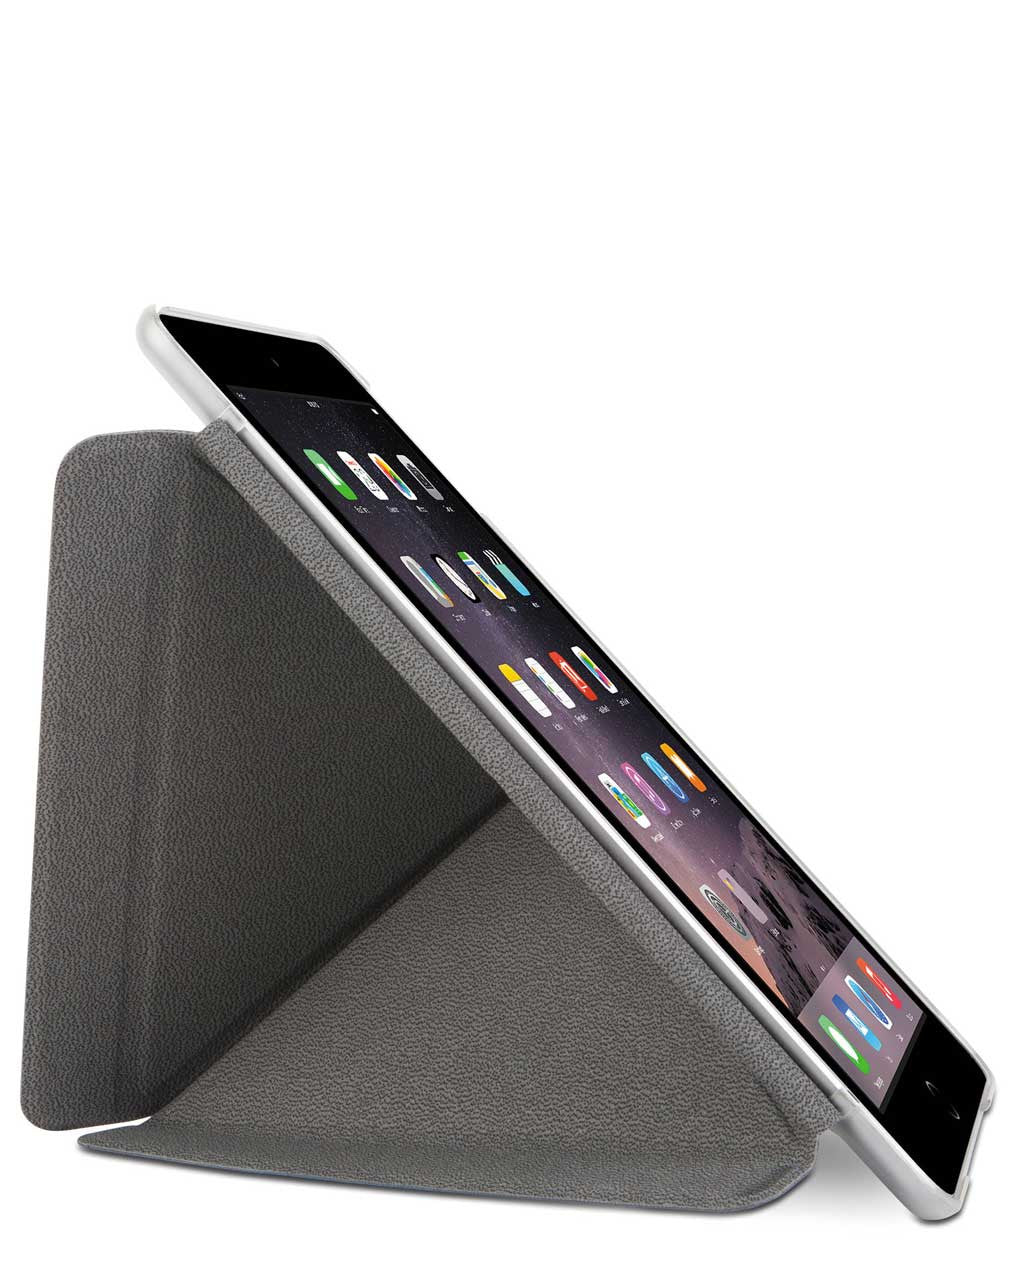 reputable site a350b bc107 Moshi VersaCover – iPad Air 2 Stand Case with Origami Cover – BrandsWalk